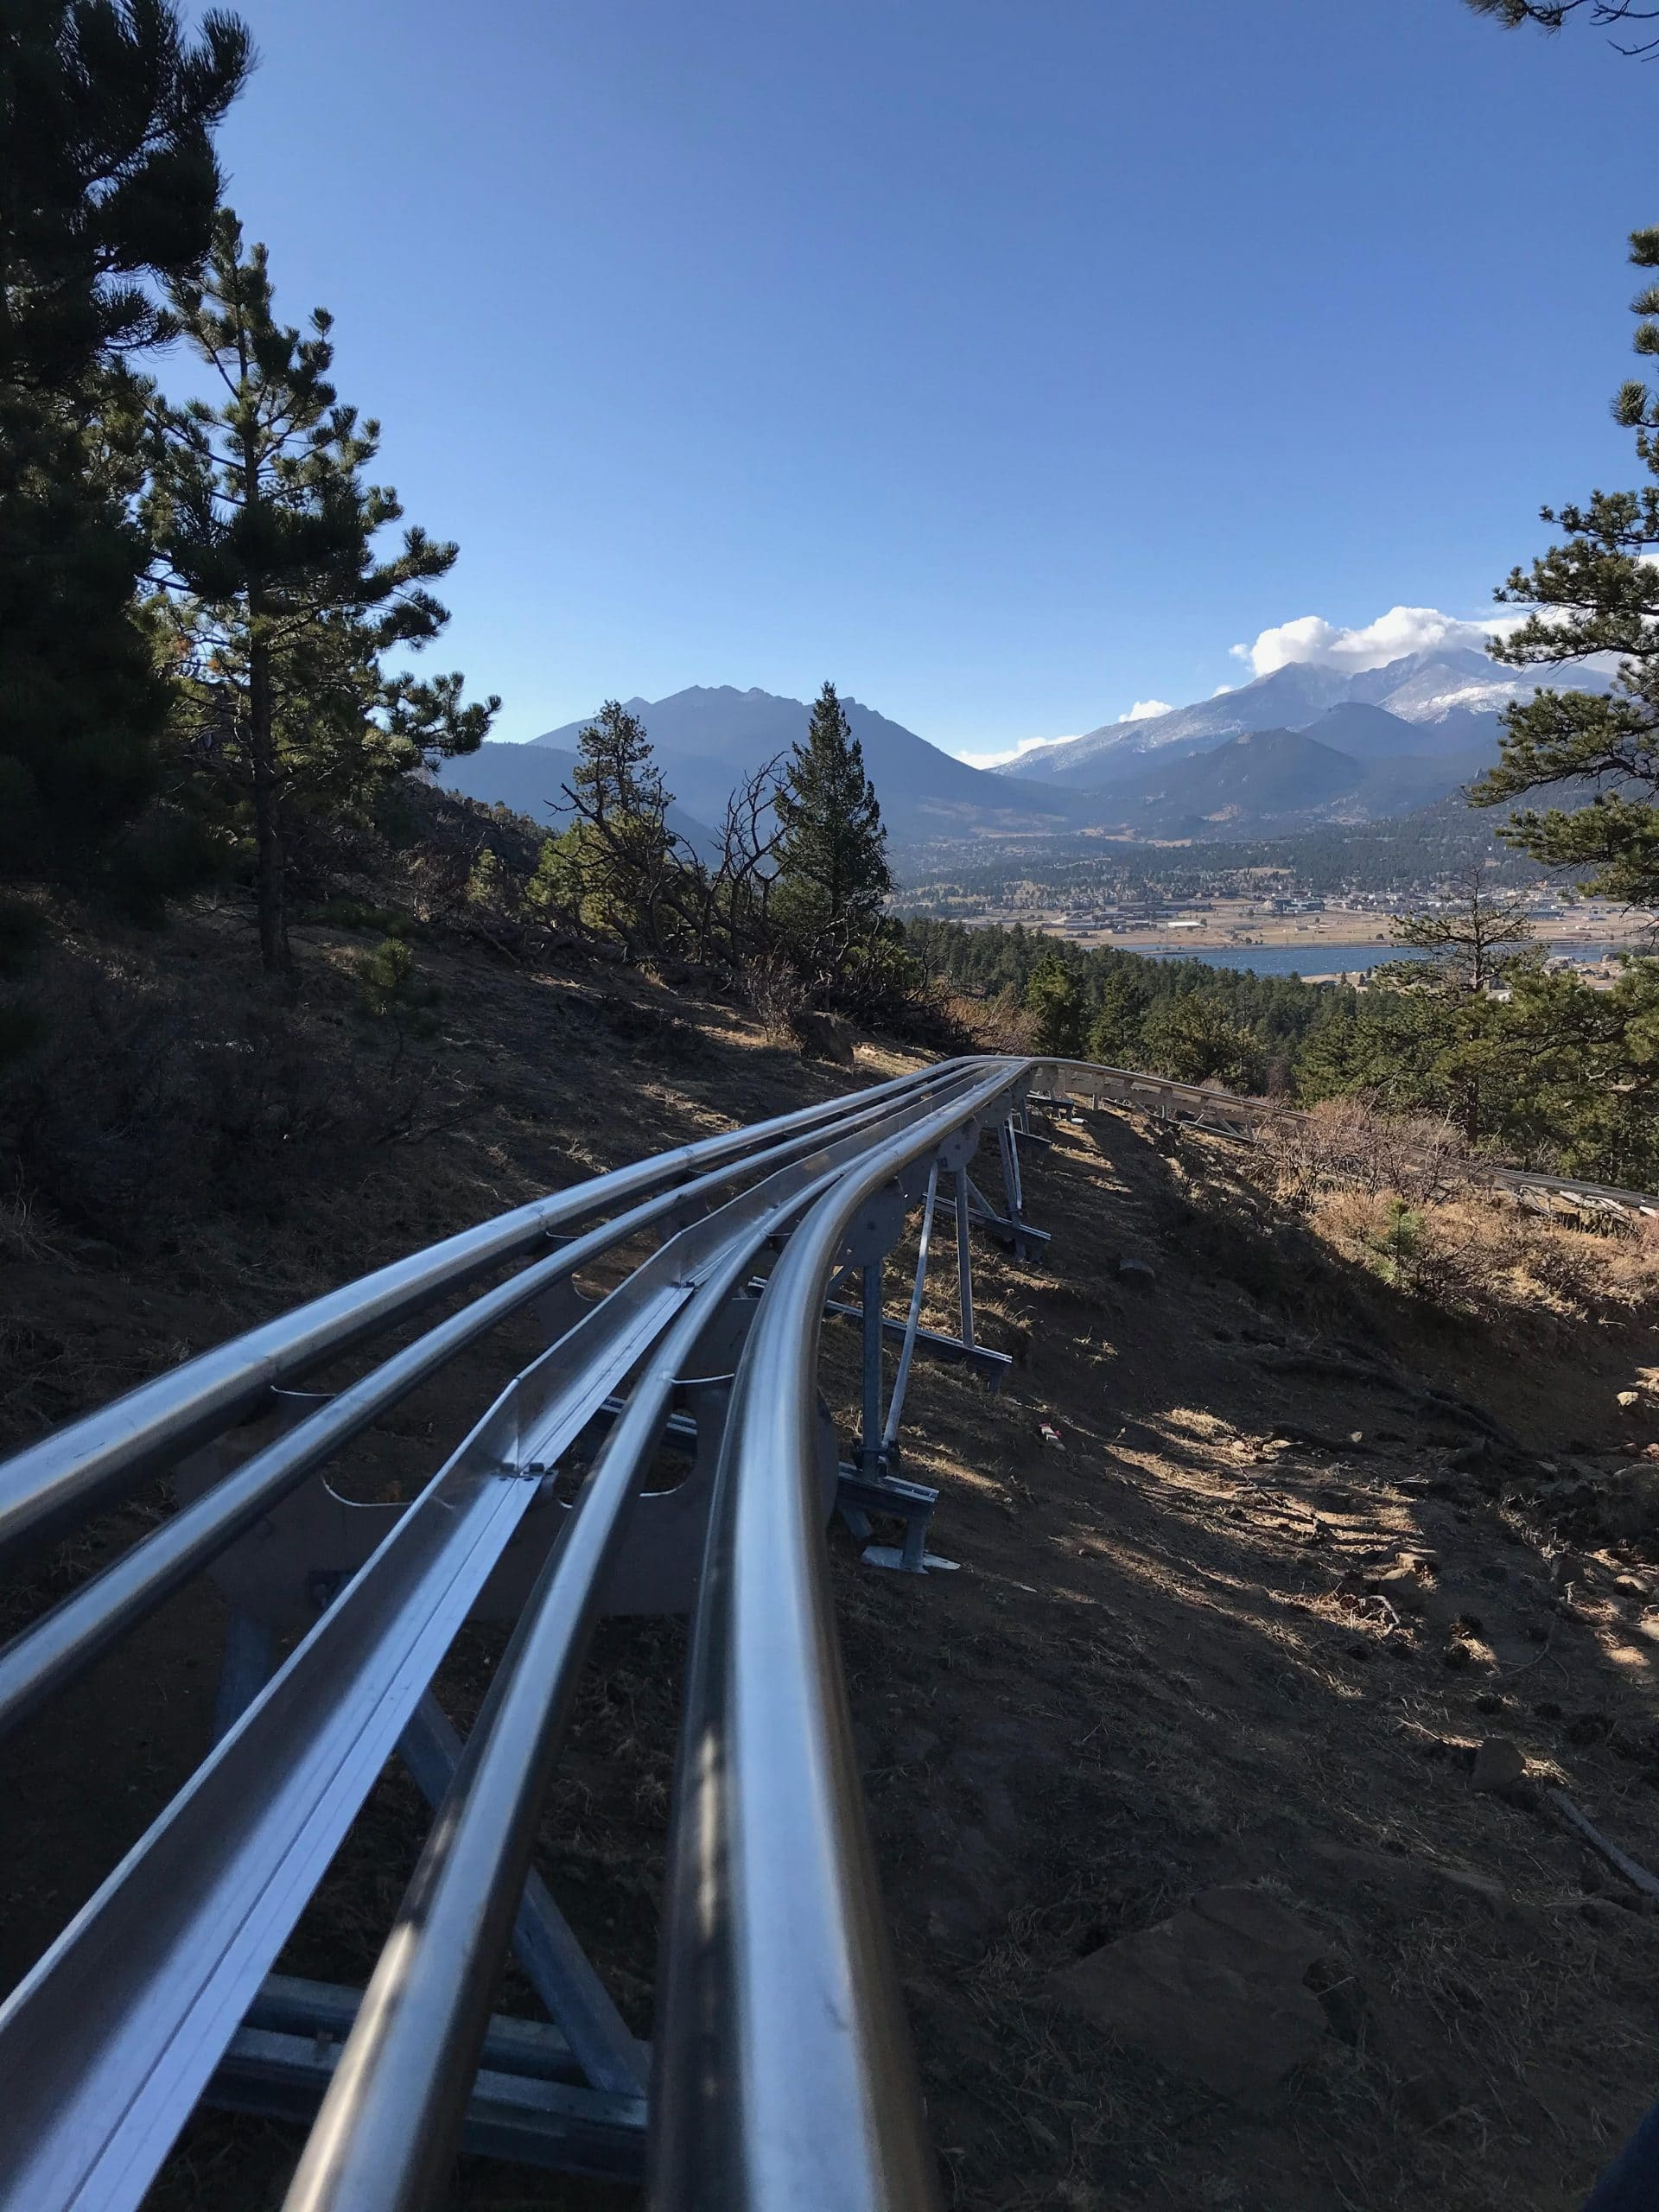 Mustang Mountain Coaster-The newest alpine coaster in Colorado